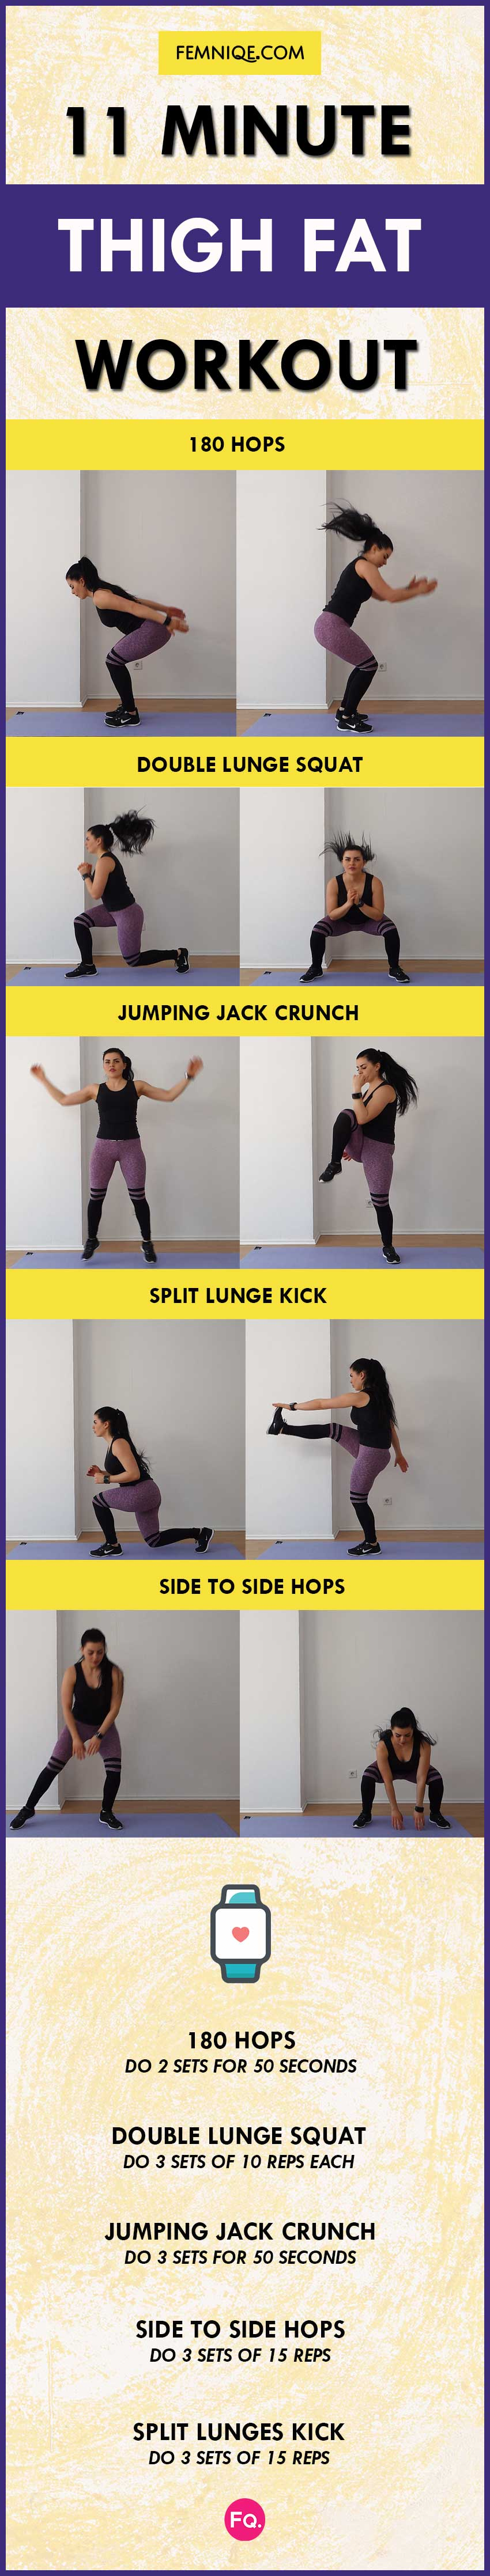 INNER & OUTER THIGH FAT WORKOUT